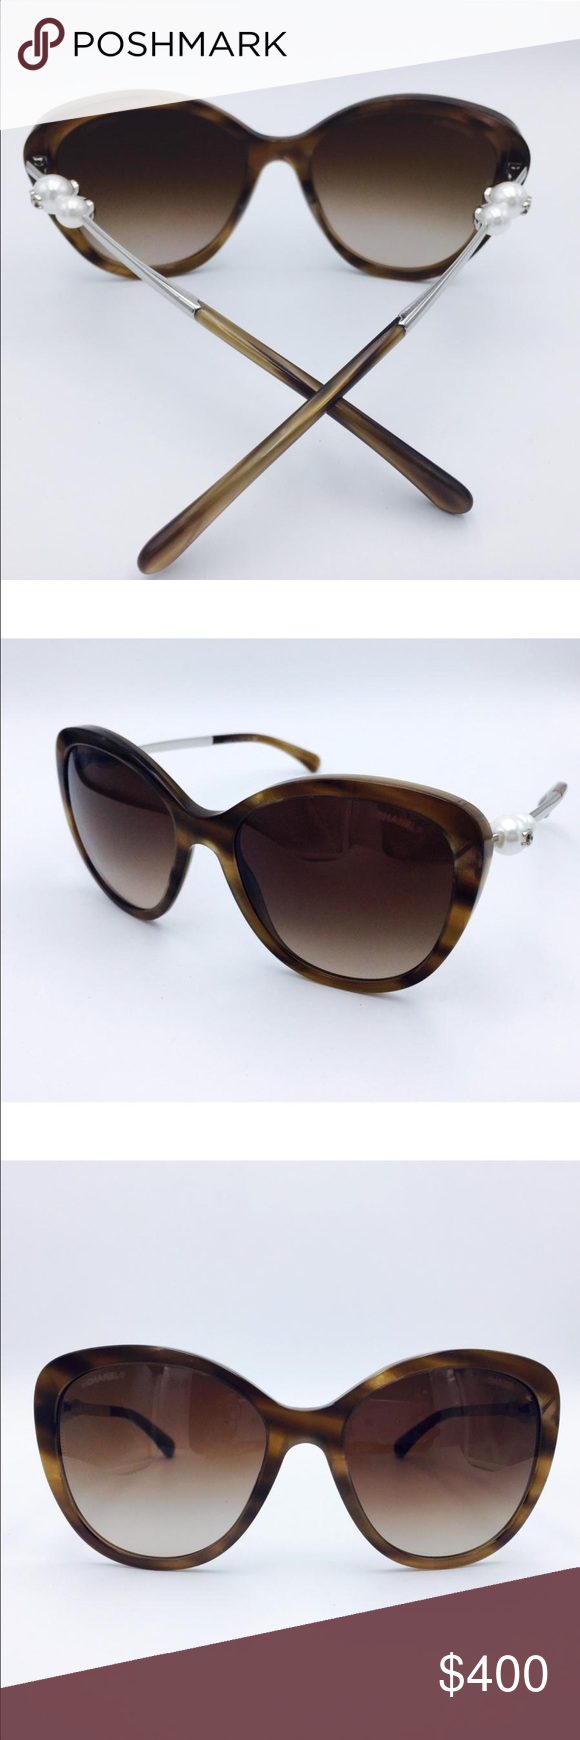 aacbbc628f0 Chanel rare Taupe pearl sunglasses 56 Stunning and classes Glasses are in  good condition. Very